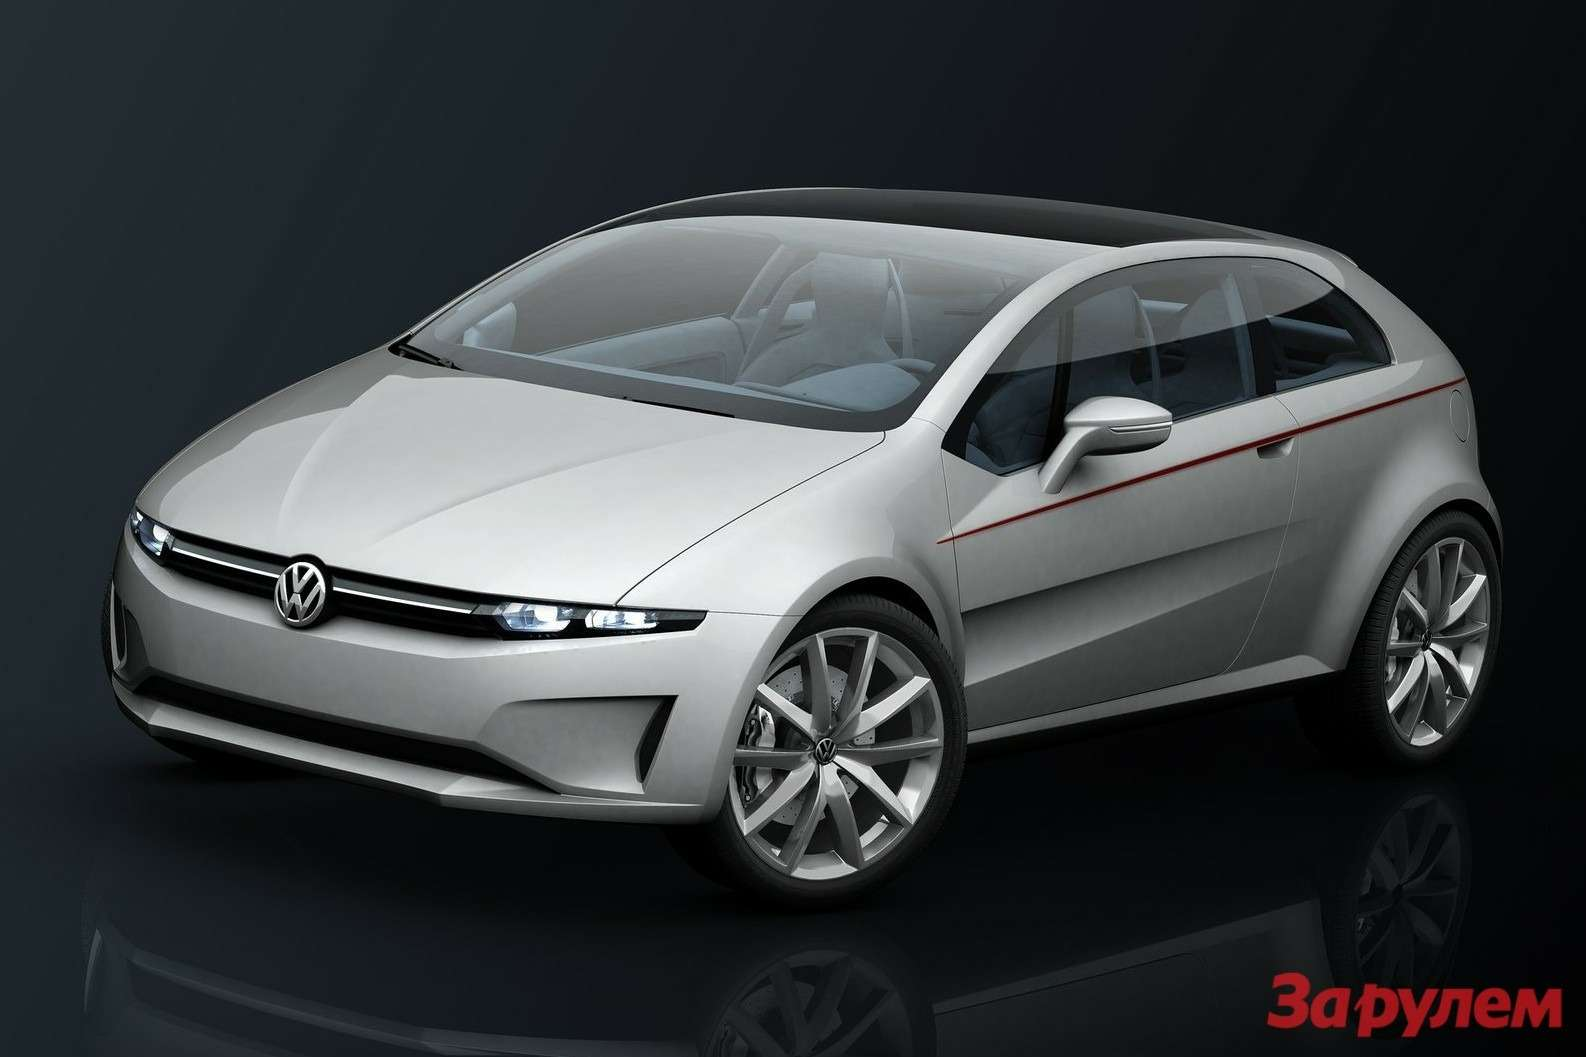 Italdesign-Tex_Concept_2011_1600x1200_wallpaper_01